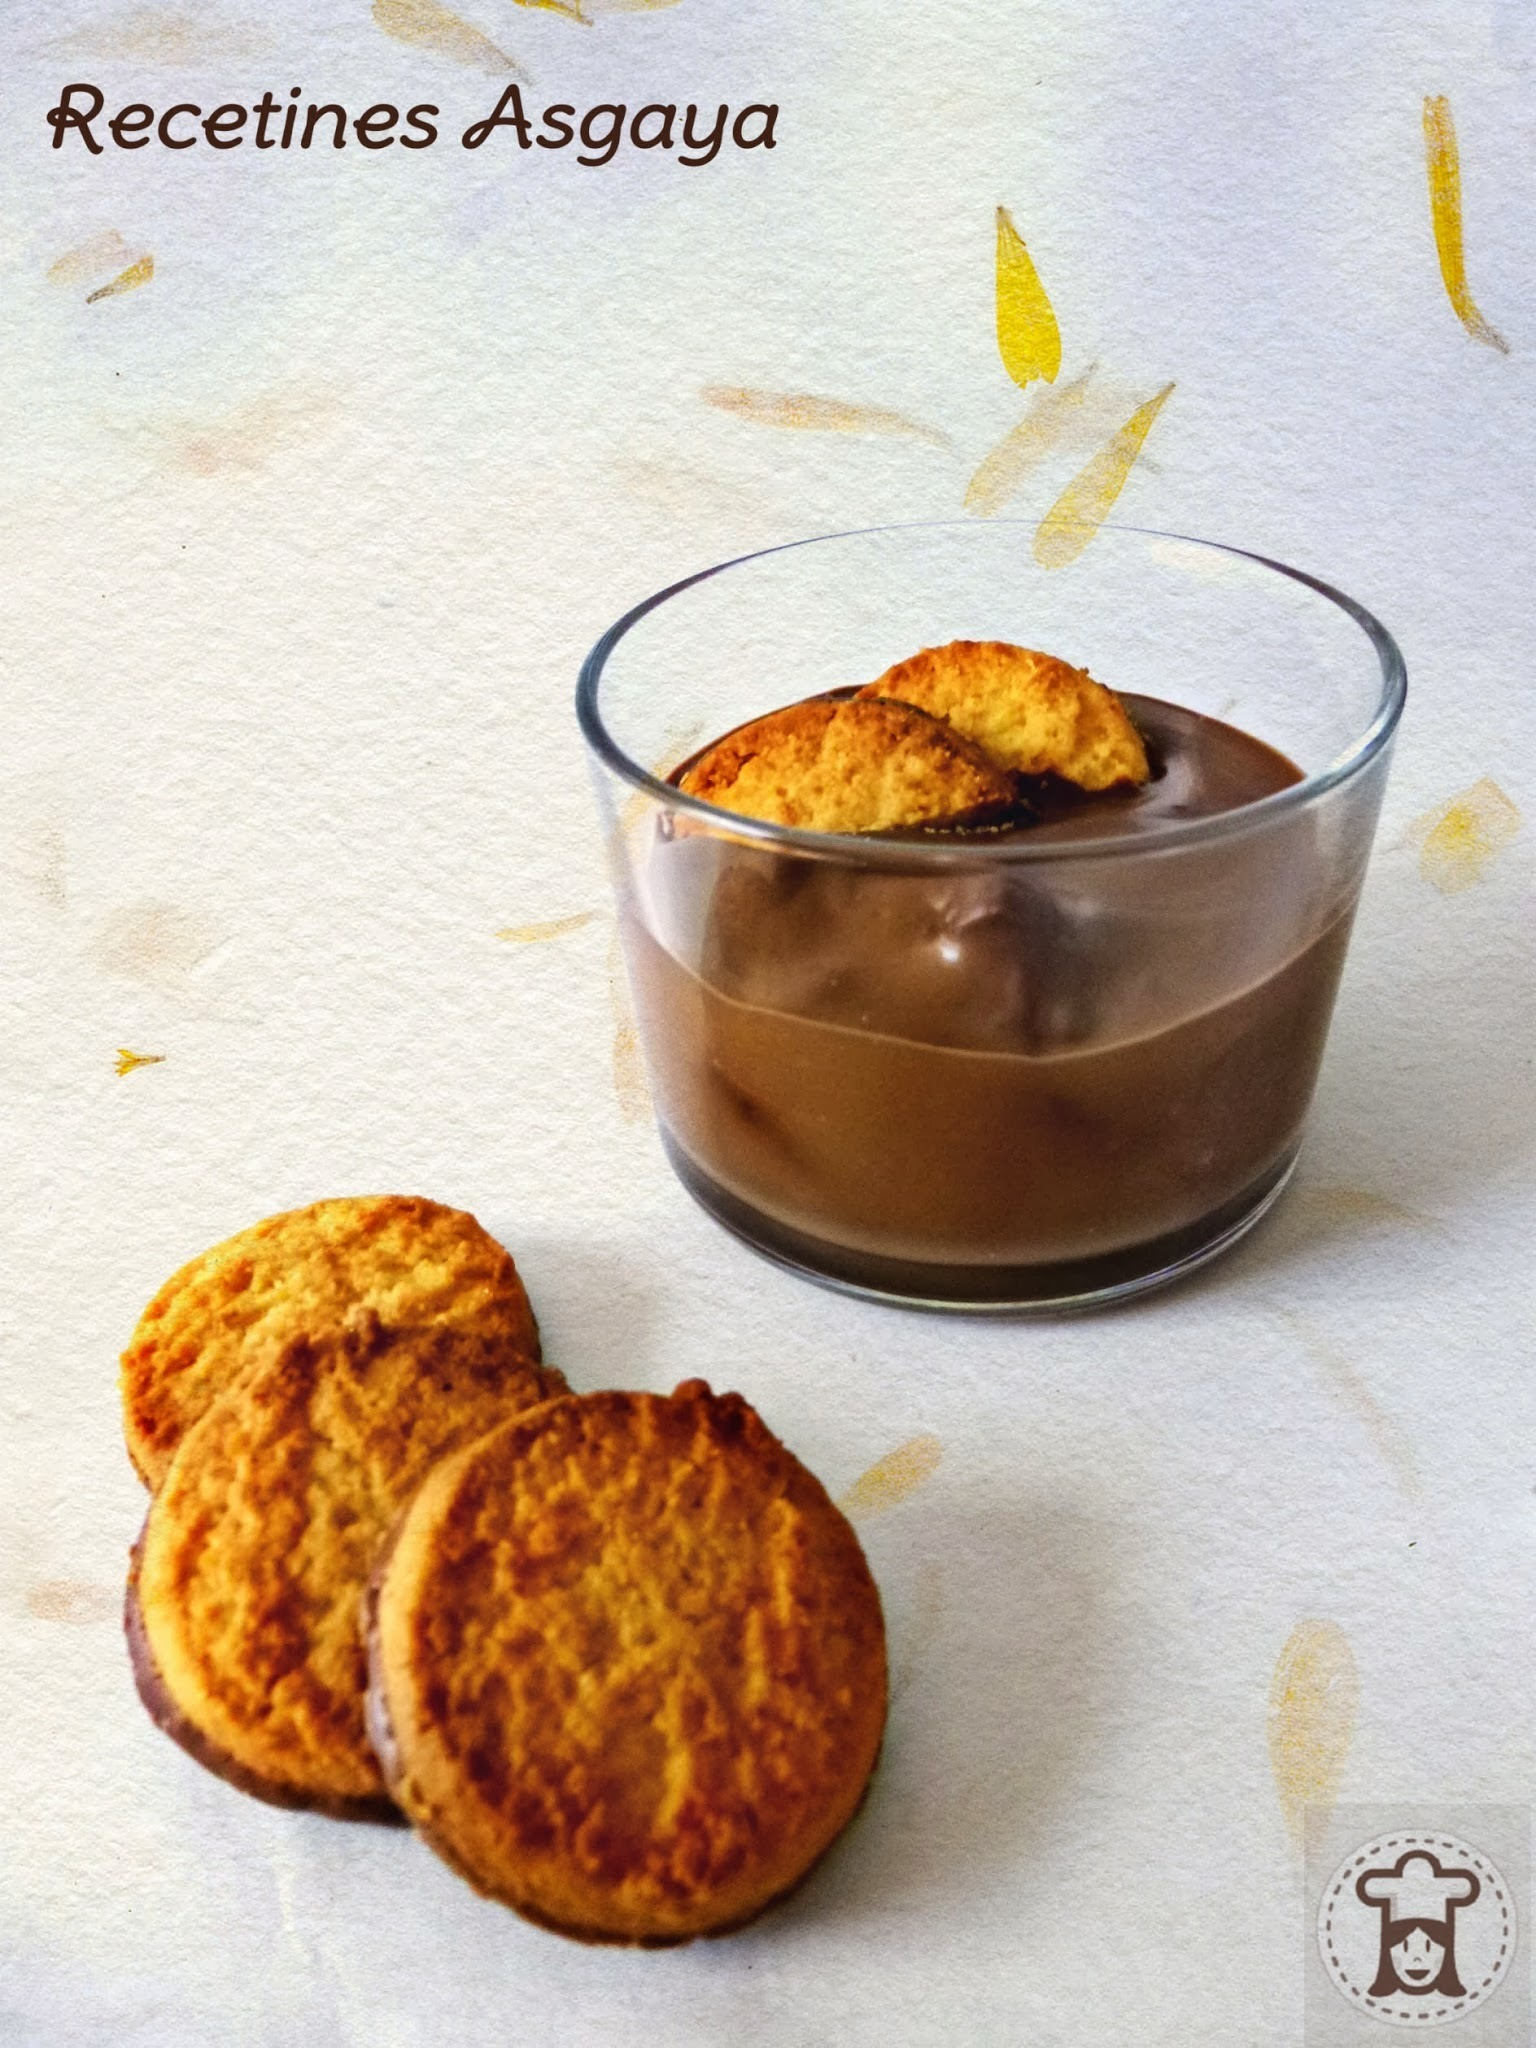 Panna Cotta de Chocolate con Galletas de Coco